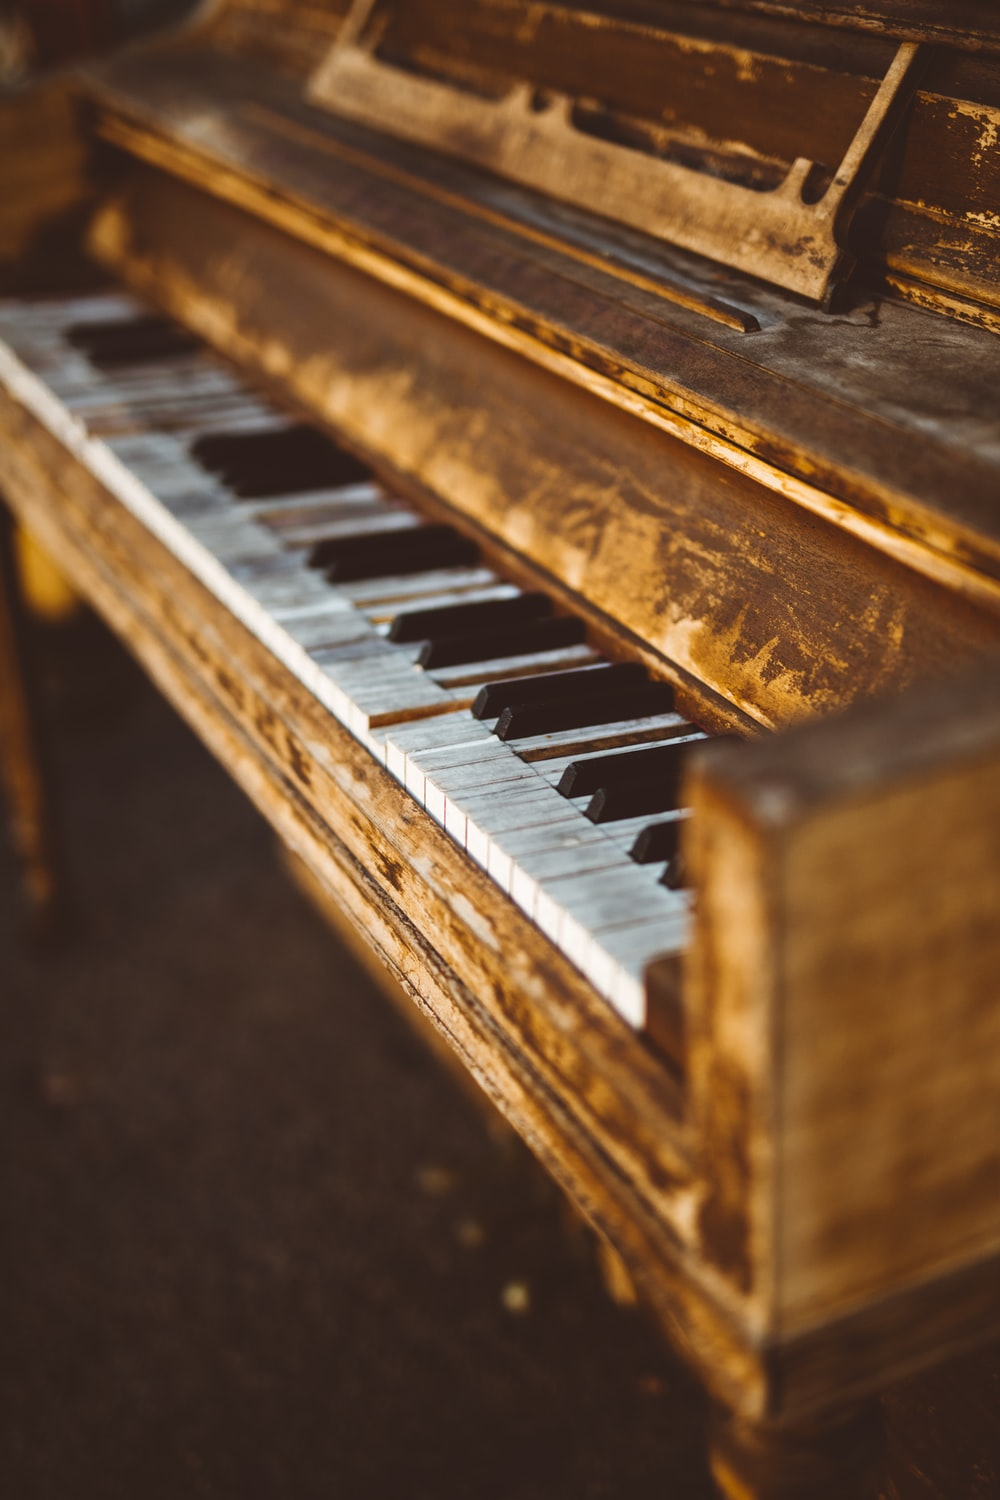 selective focus photogrpahy of brown wooden console piano